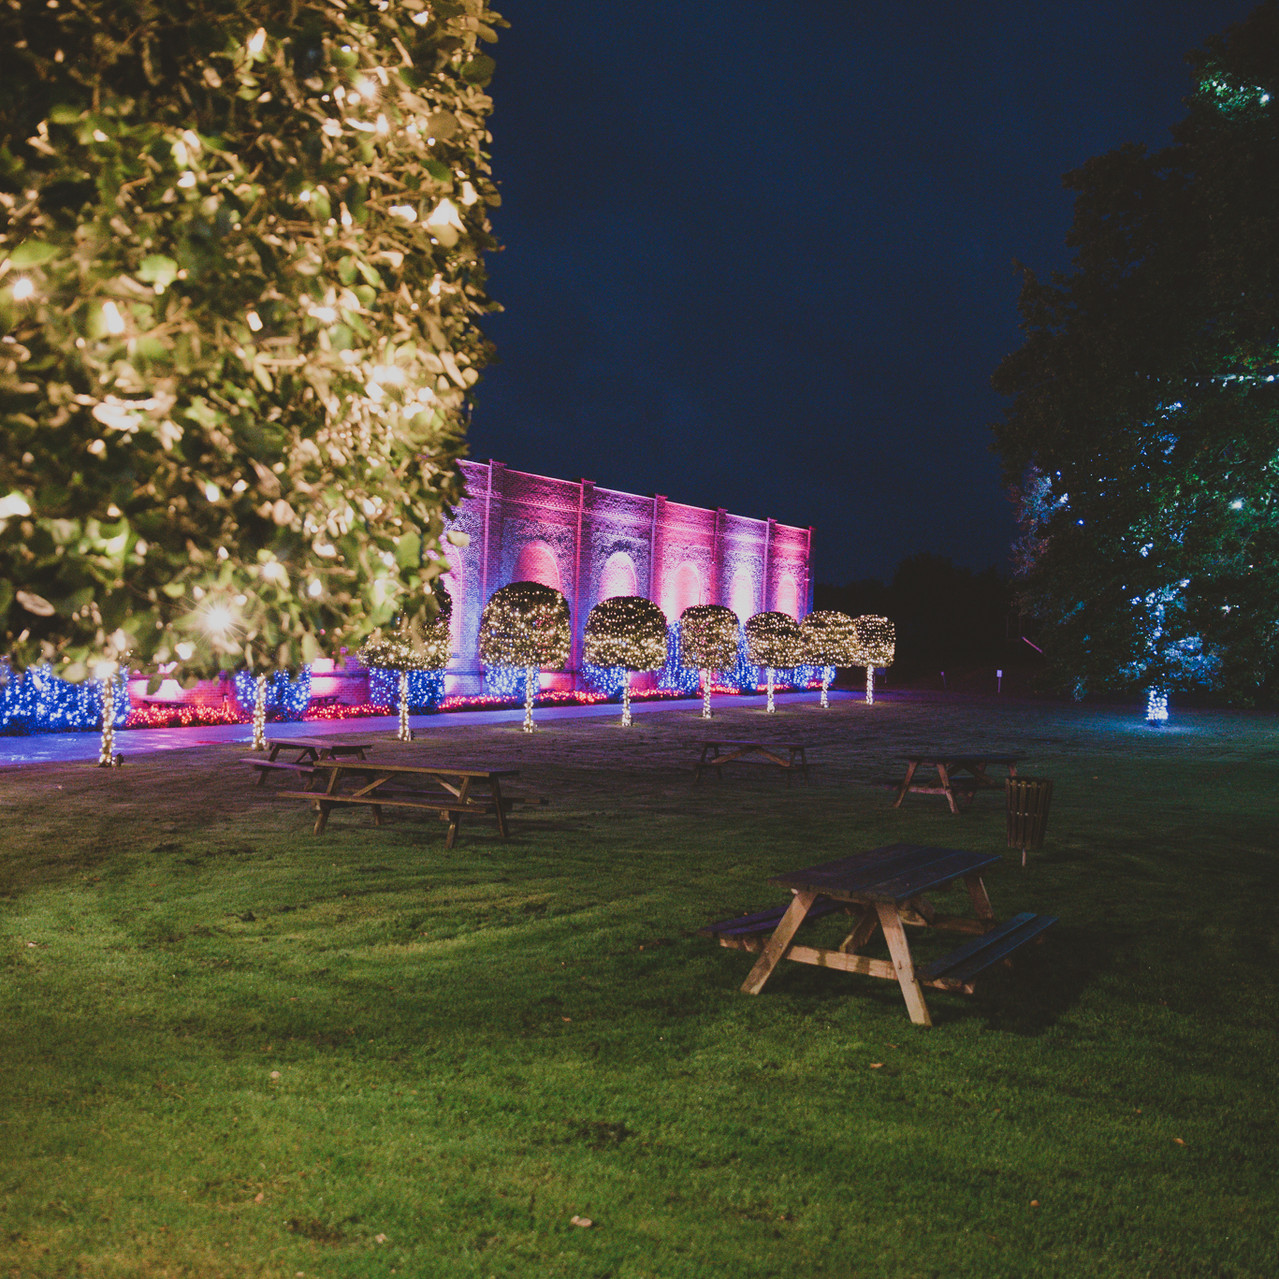 Fay Wedding - Thursford Collection at the Garden Pavilion, Norfolk. at night